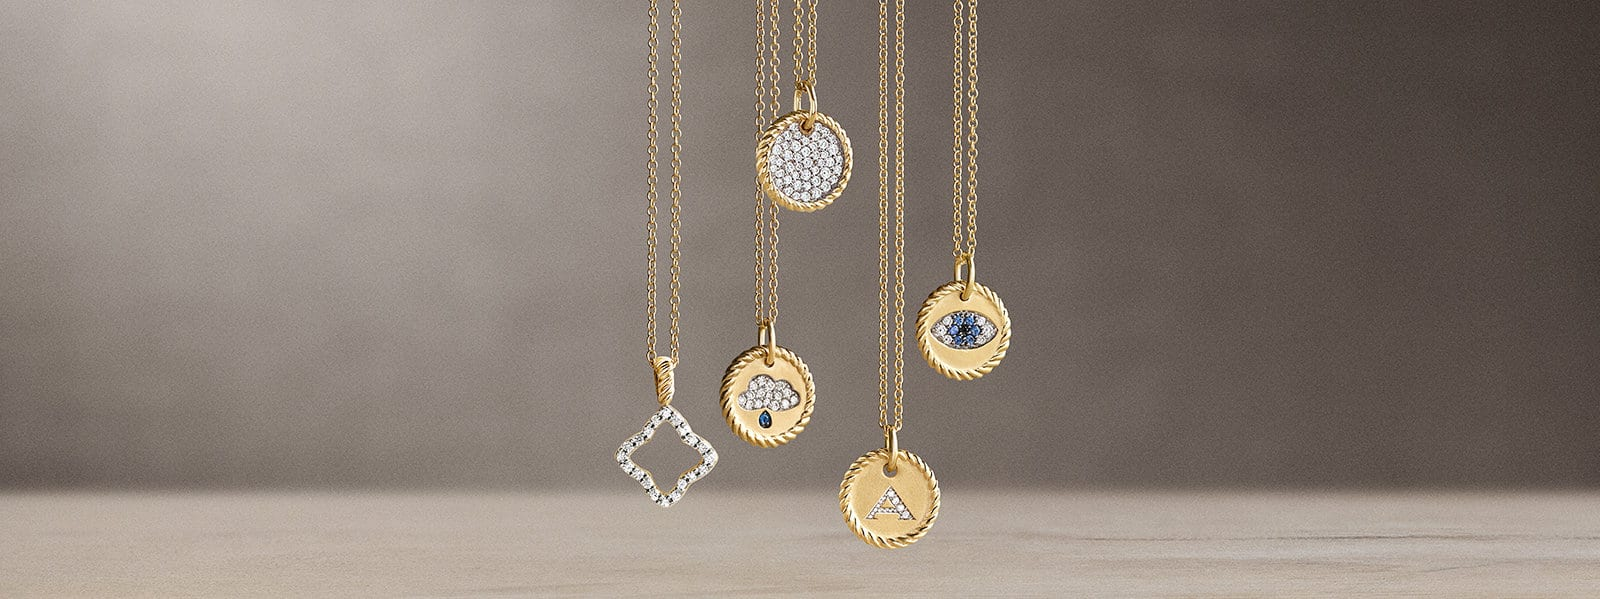 Cable Collectibles® charm necklaces in 18K yellow gold with diamonds and sapphires.